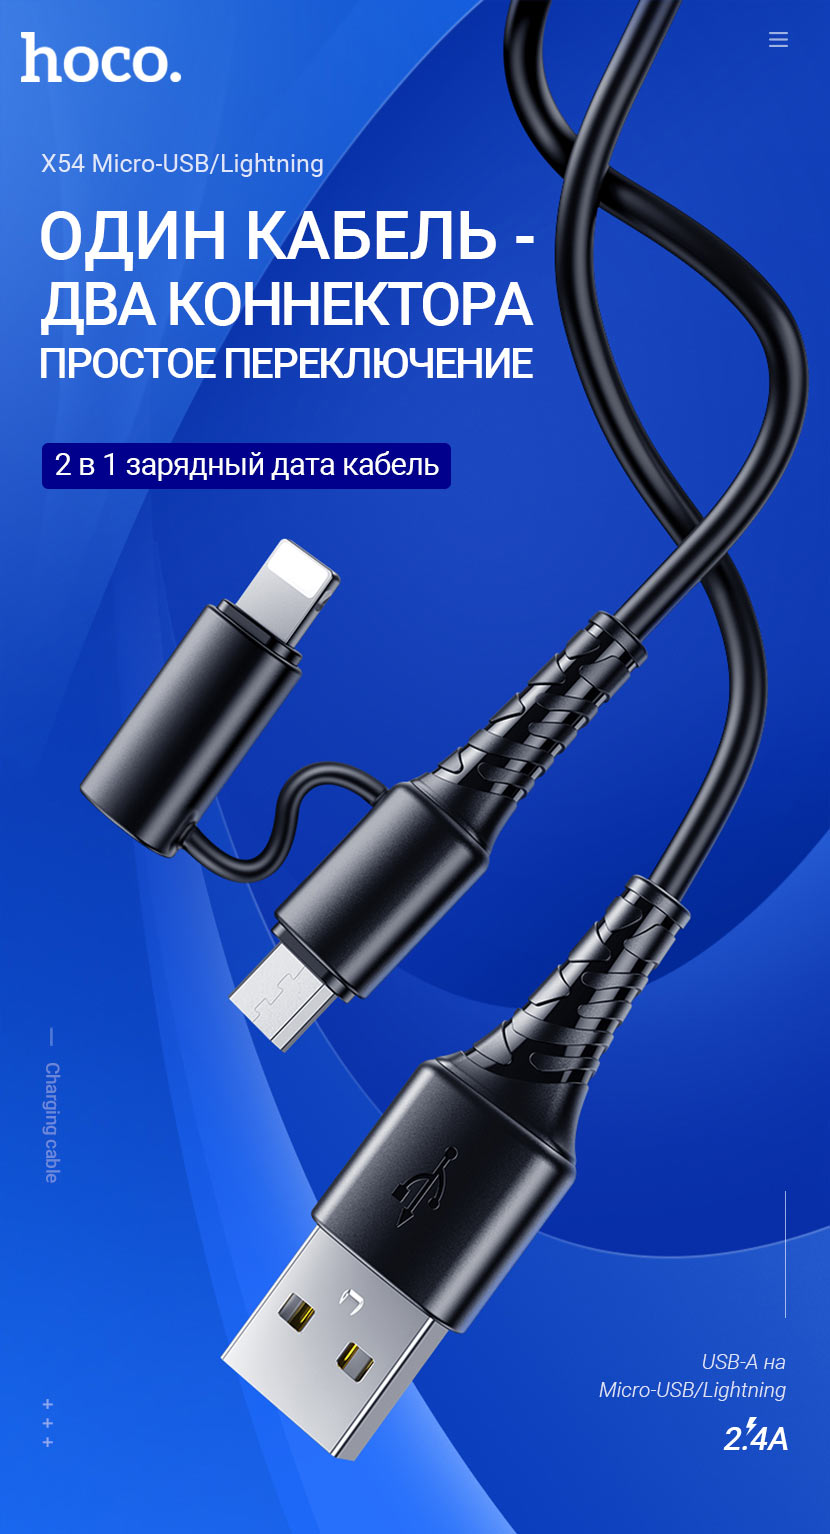 hoco news x54 cool dual 2in1 charging data cable ru